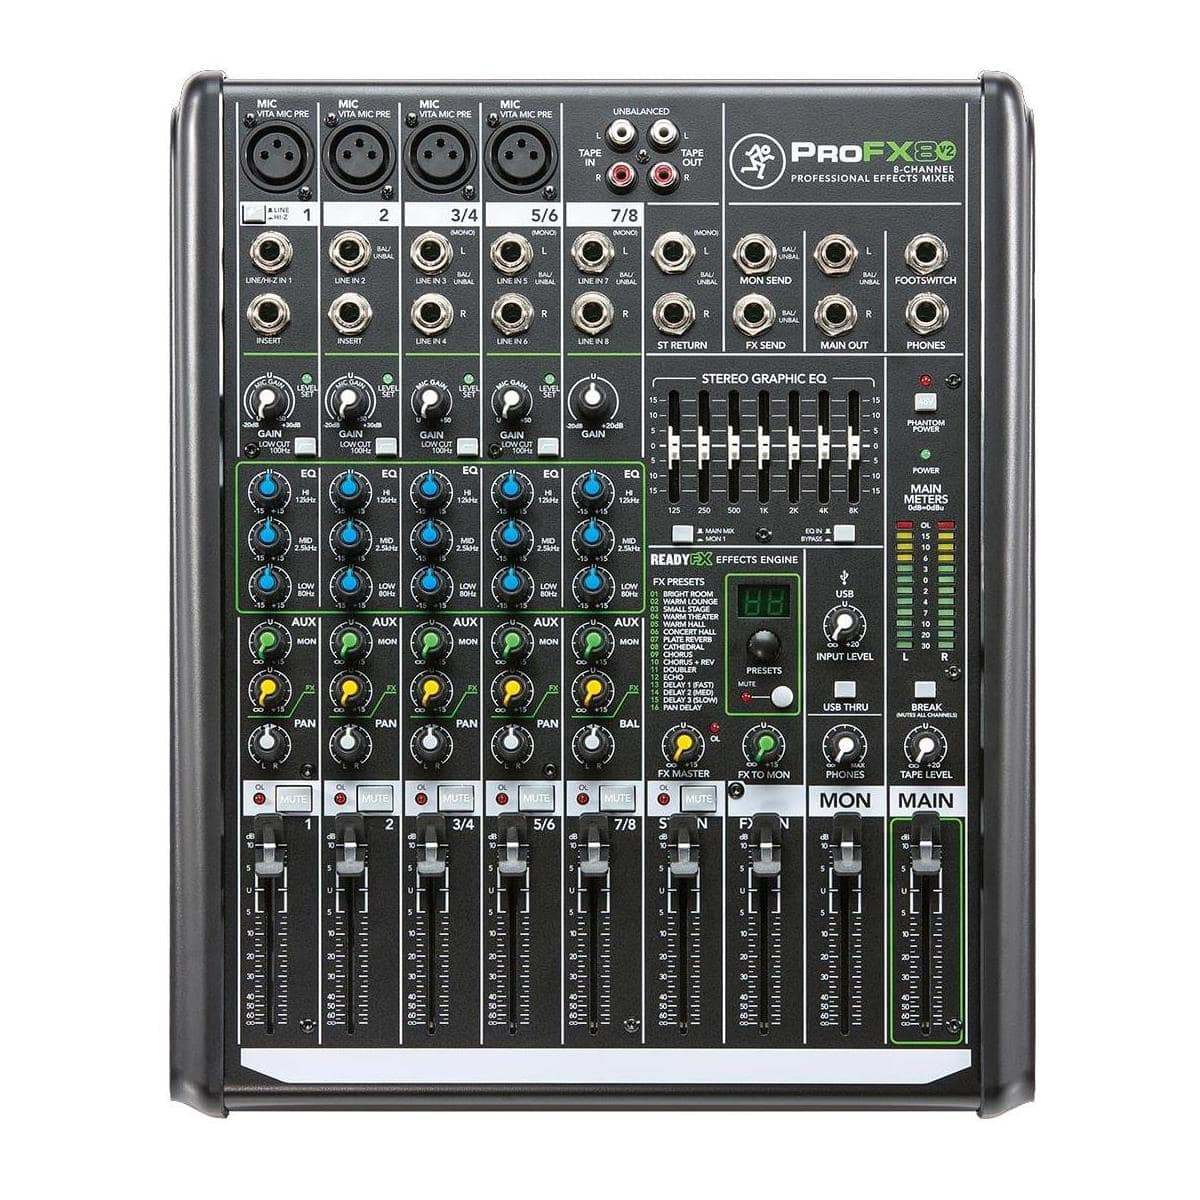 Mackie ProFX12v2 12-Ch Mixer $170 or Mackie ProFX8v2 8-ch Mixer $130 after $30 rebate + Free shipping